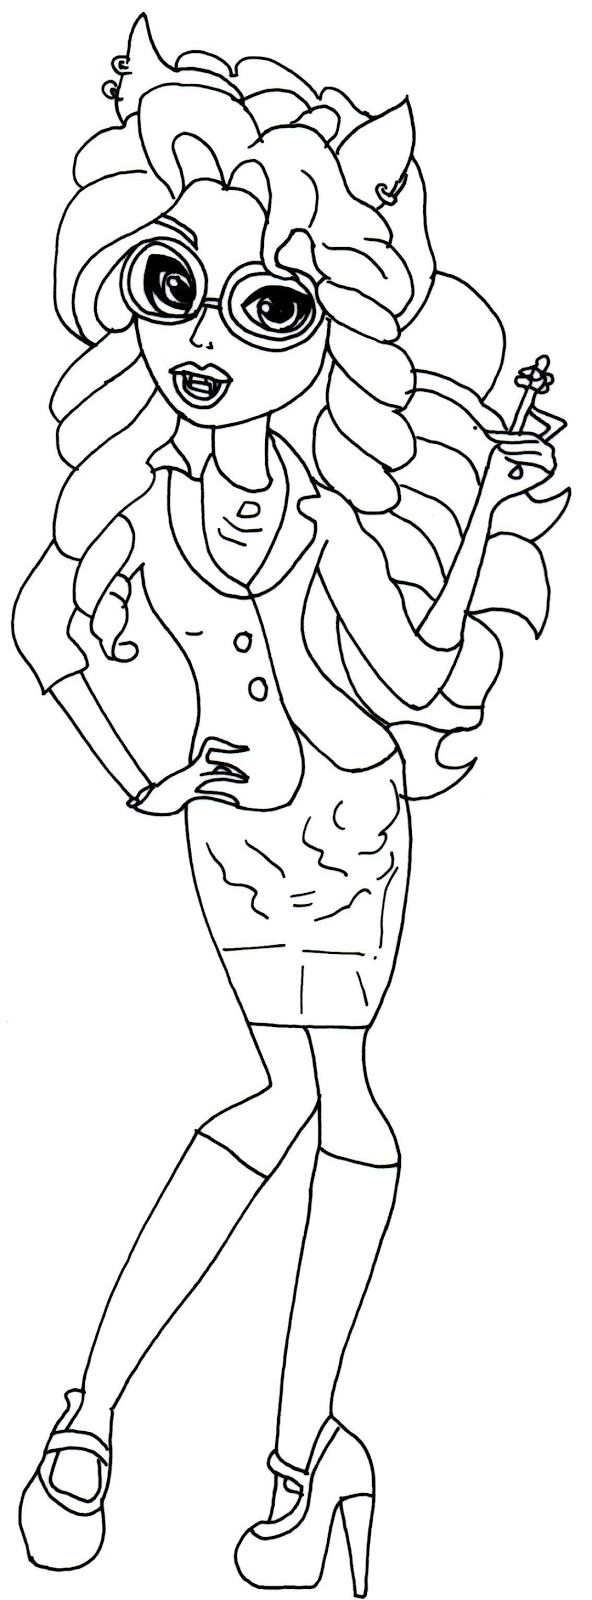 clawdiawolfcoloringpagepng 5921600